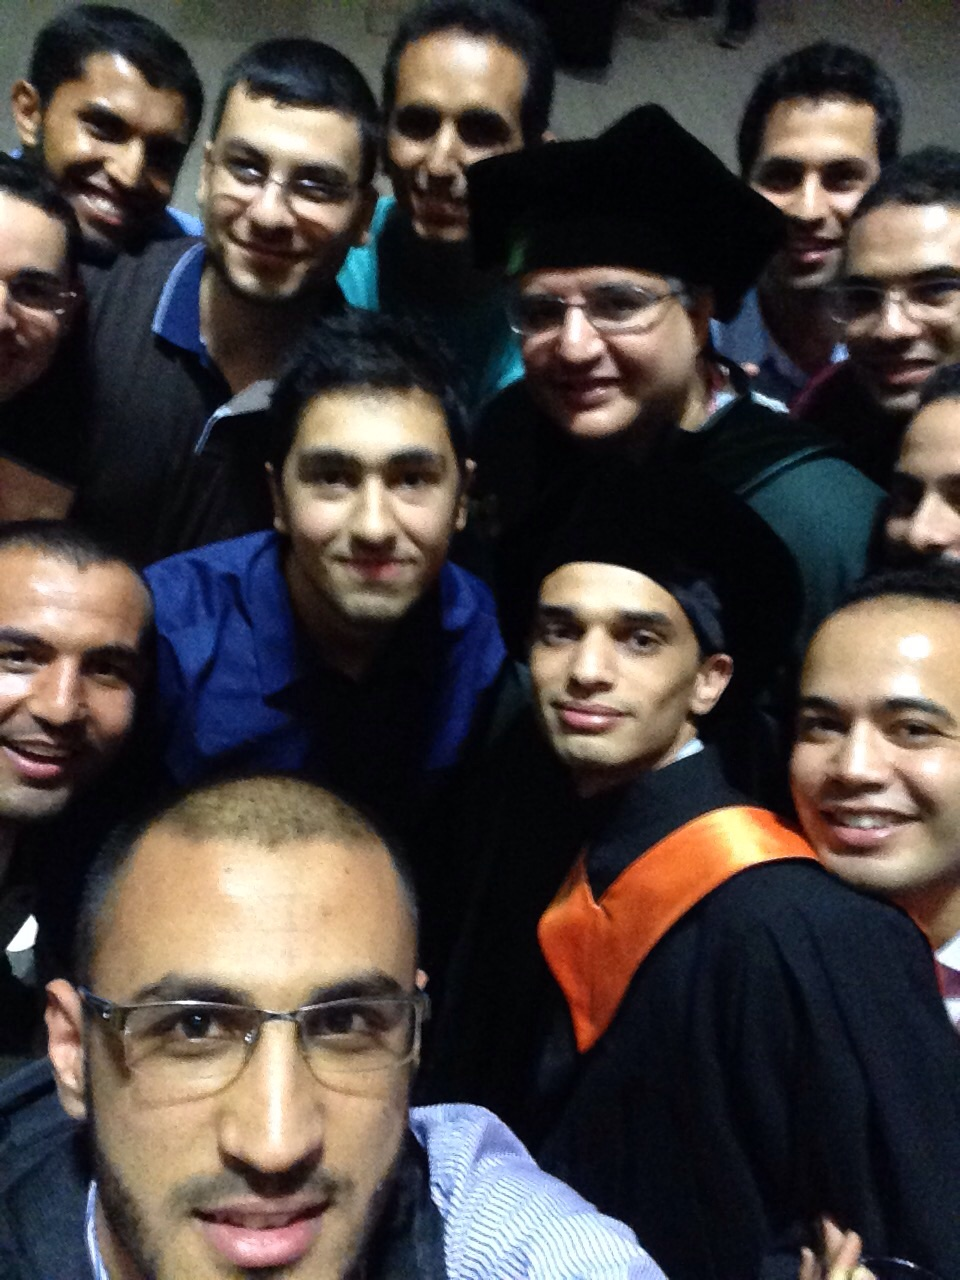 Professor Alouini in a Selfie with KAUST students during Commencement 2015